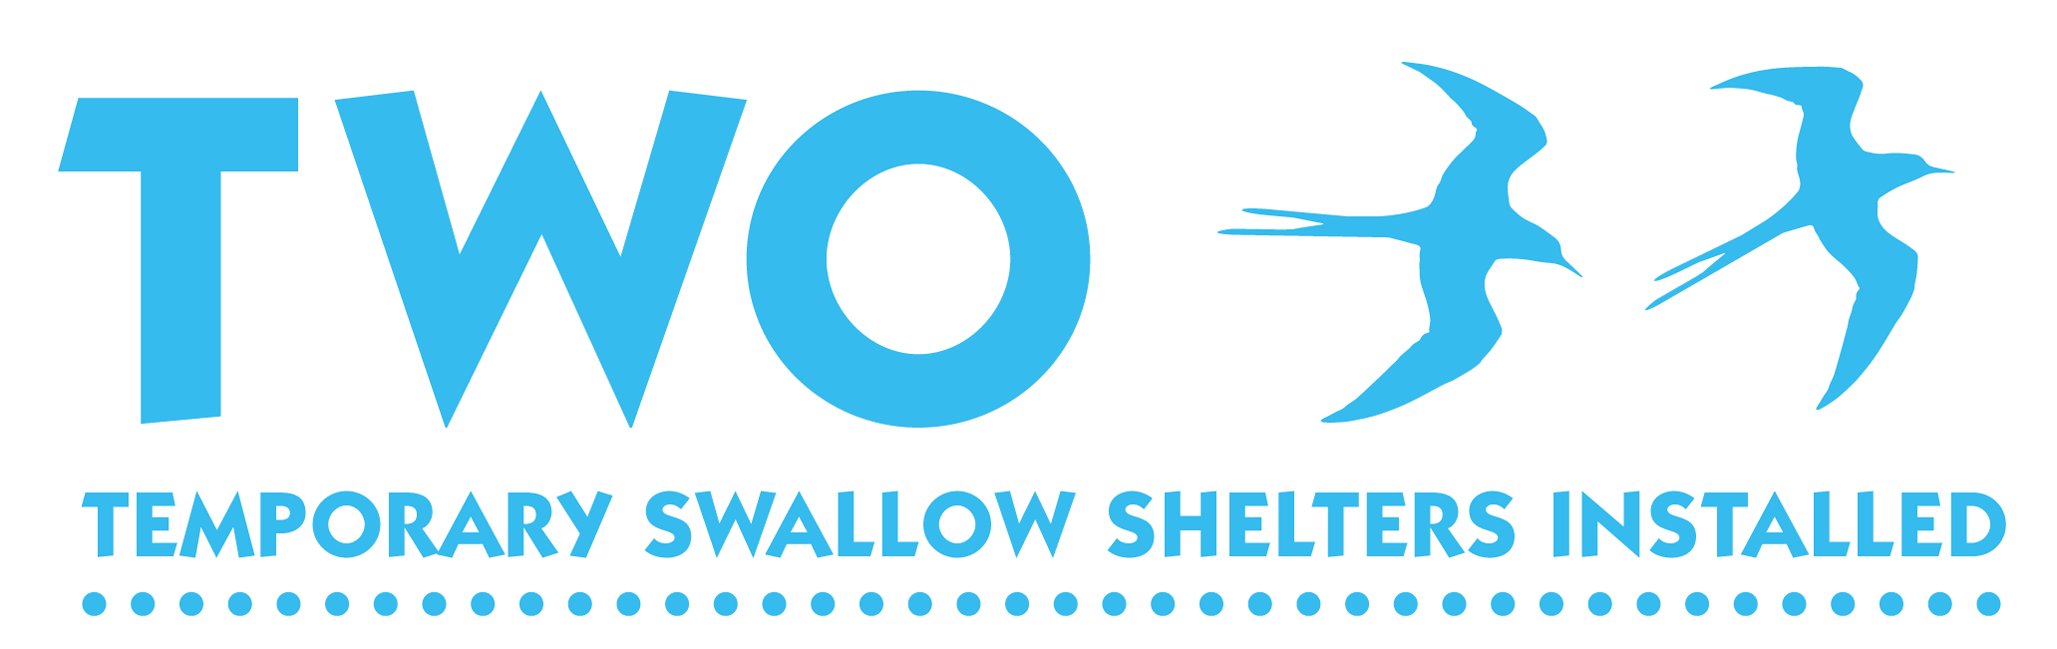 Two temporary swallow shelters installed